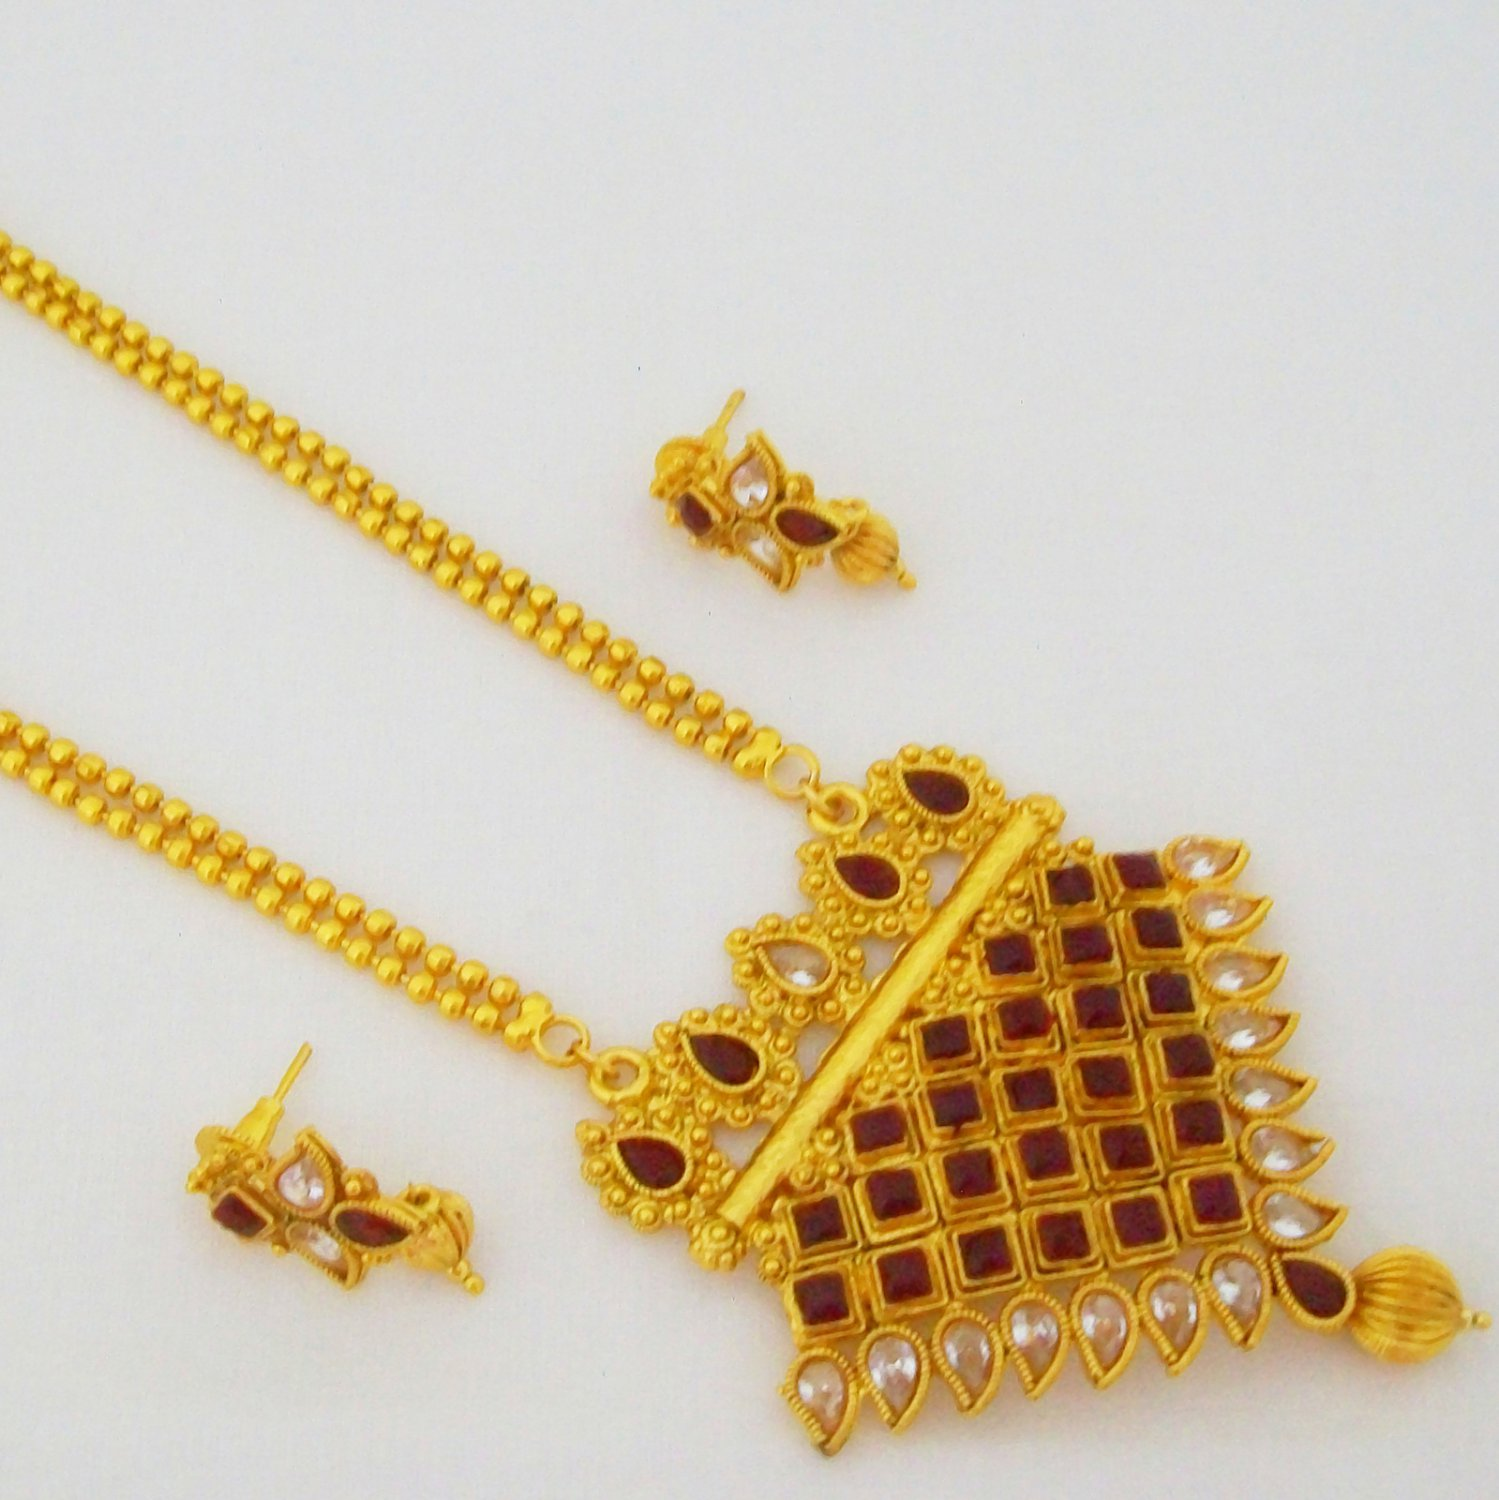 Triangle Gold Plated Long Beads Chain Pendant Necklace Jewelry Set